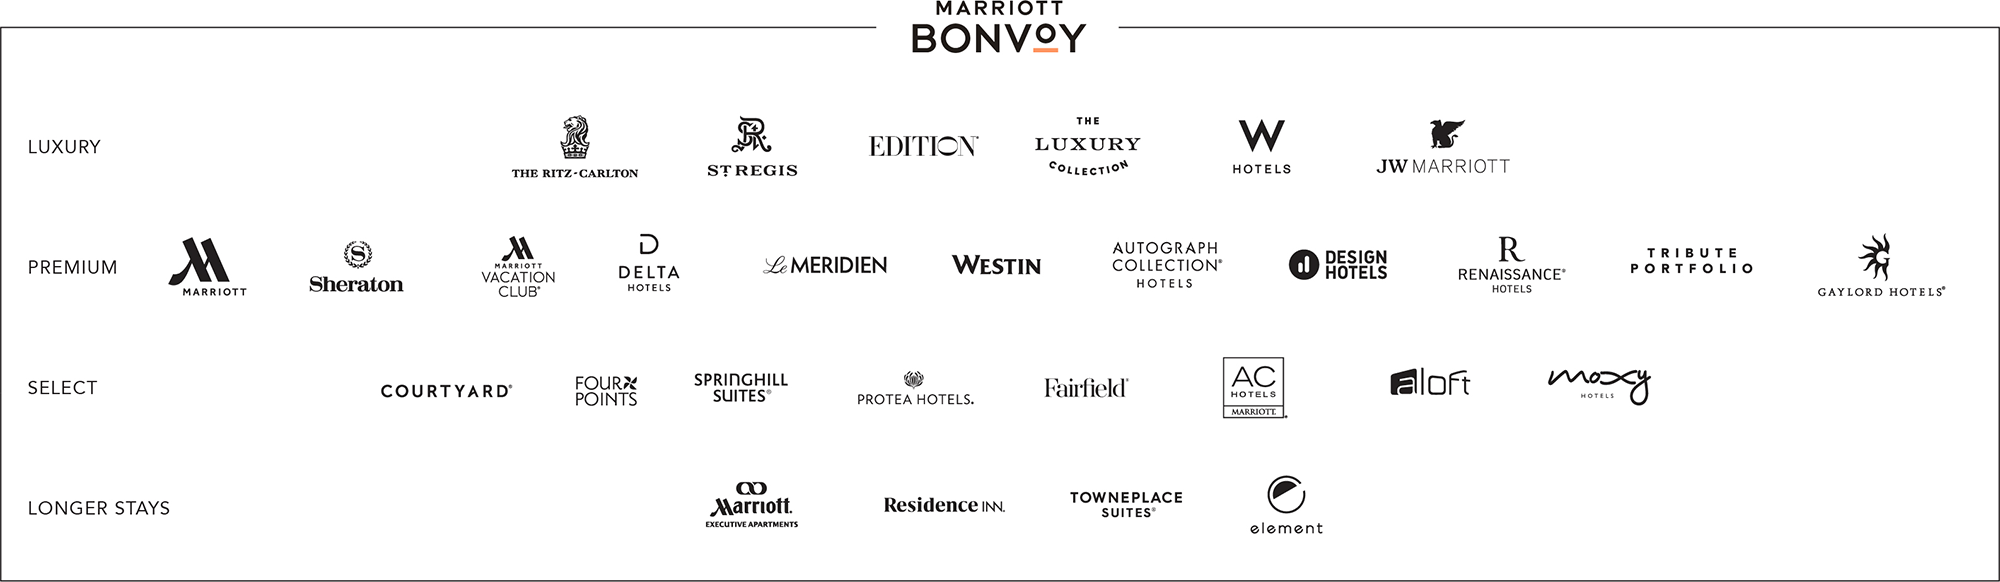 Marriott Hotels Brands